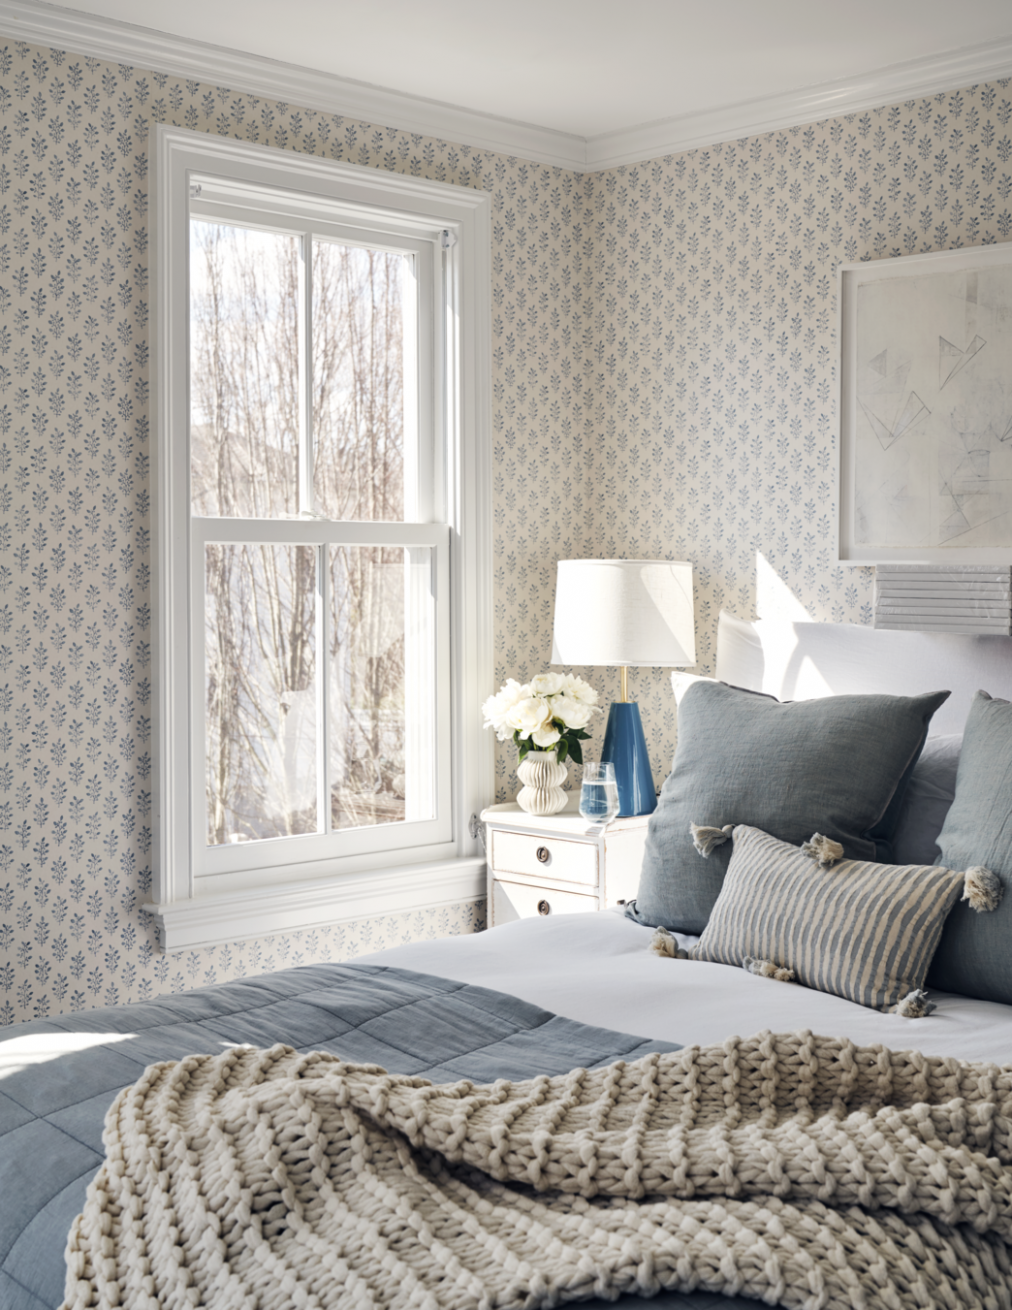 12 Best Gray Bedroom Ideas - Decorating Pictures of Gray Bedroom  - Bedroom Ideas Grey Walls